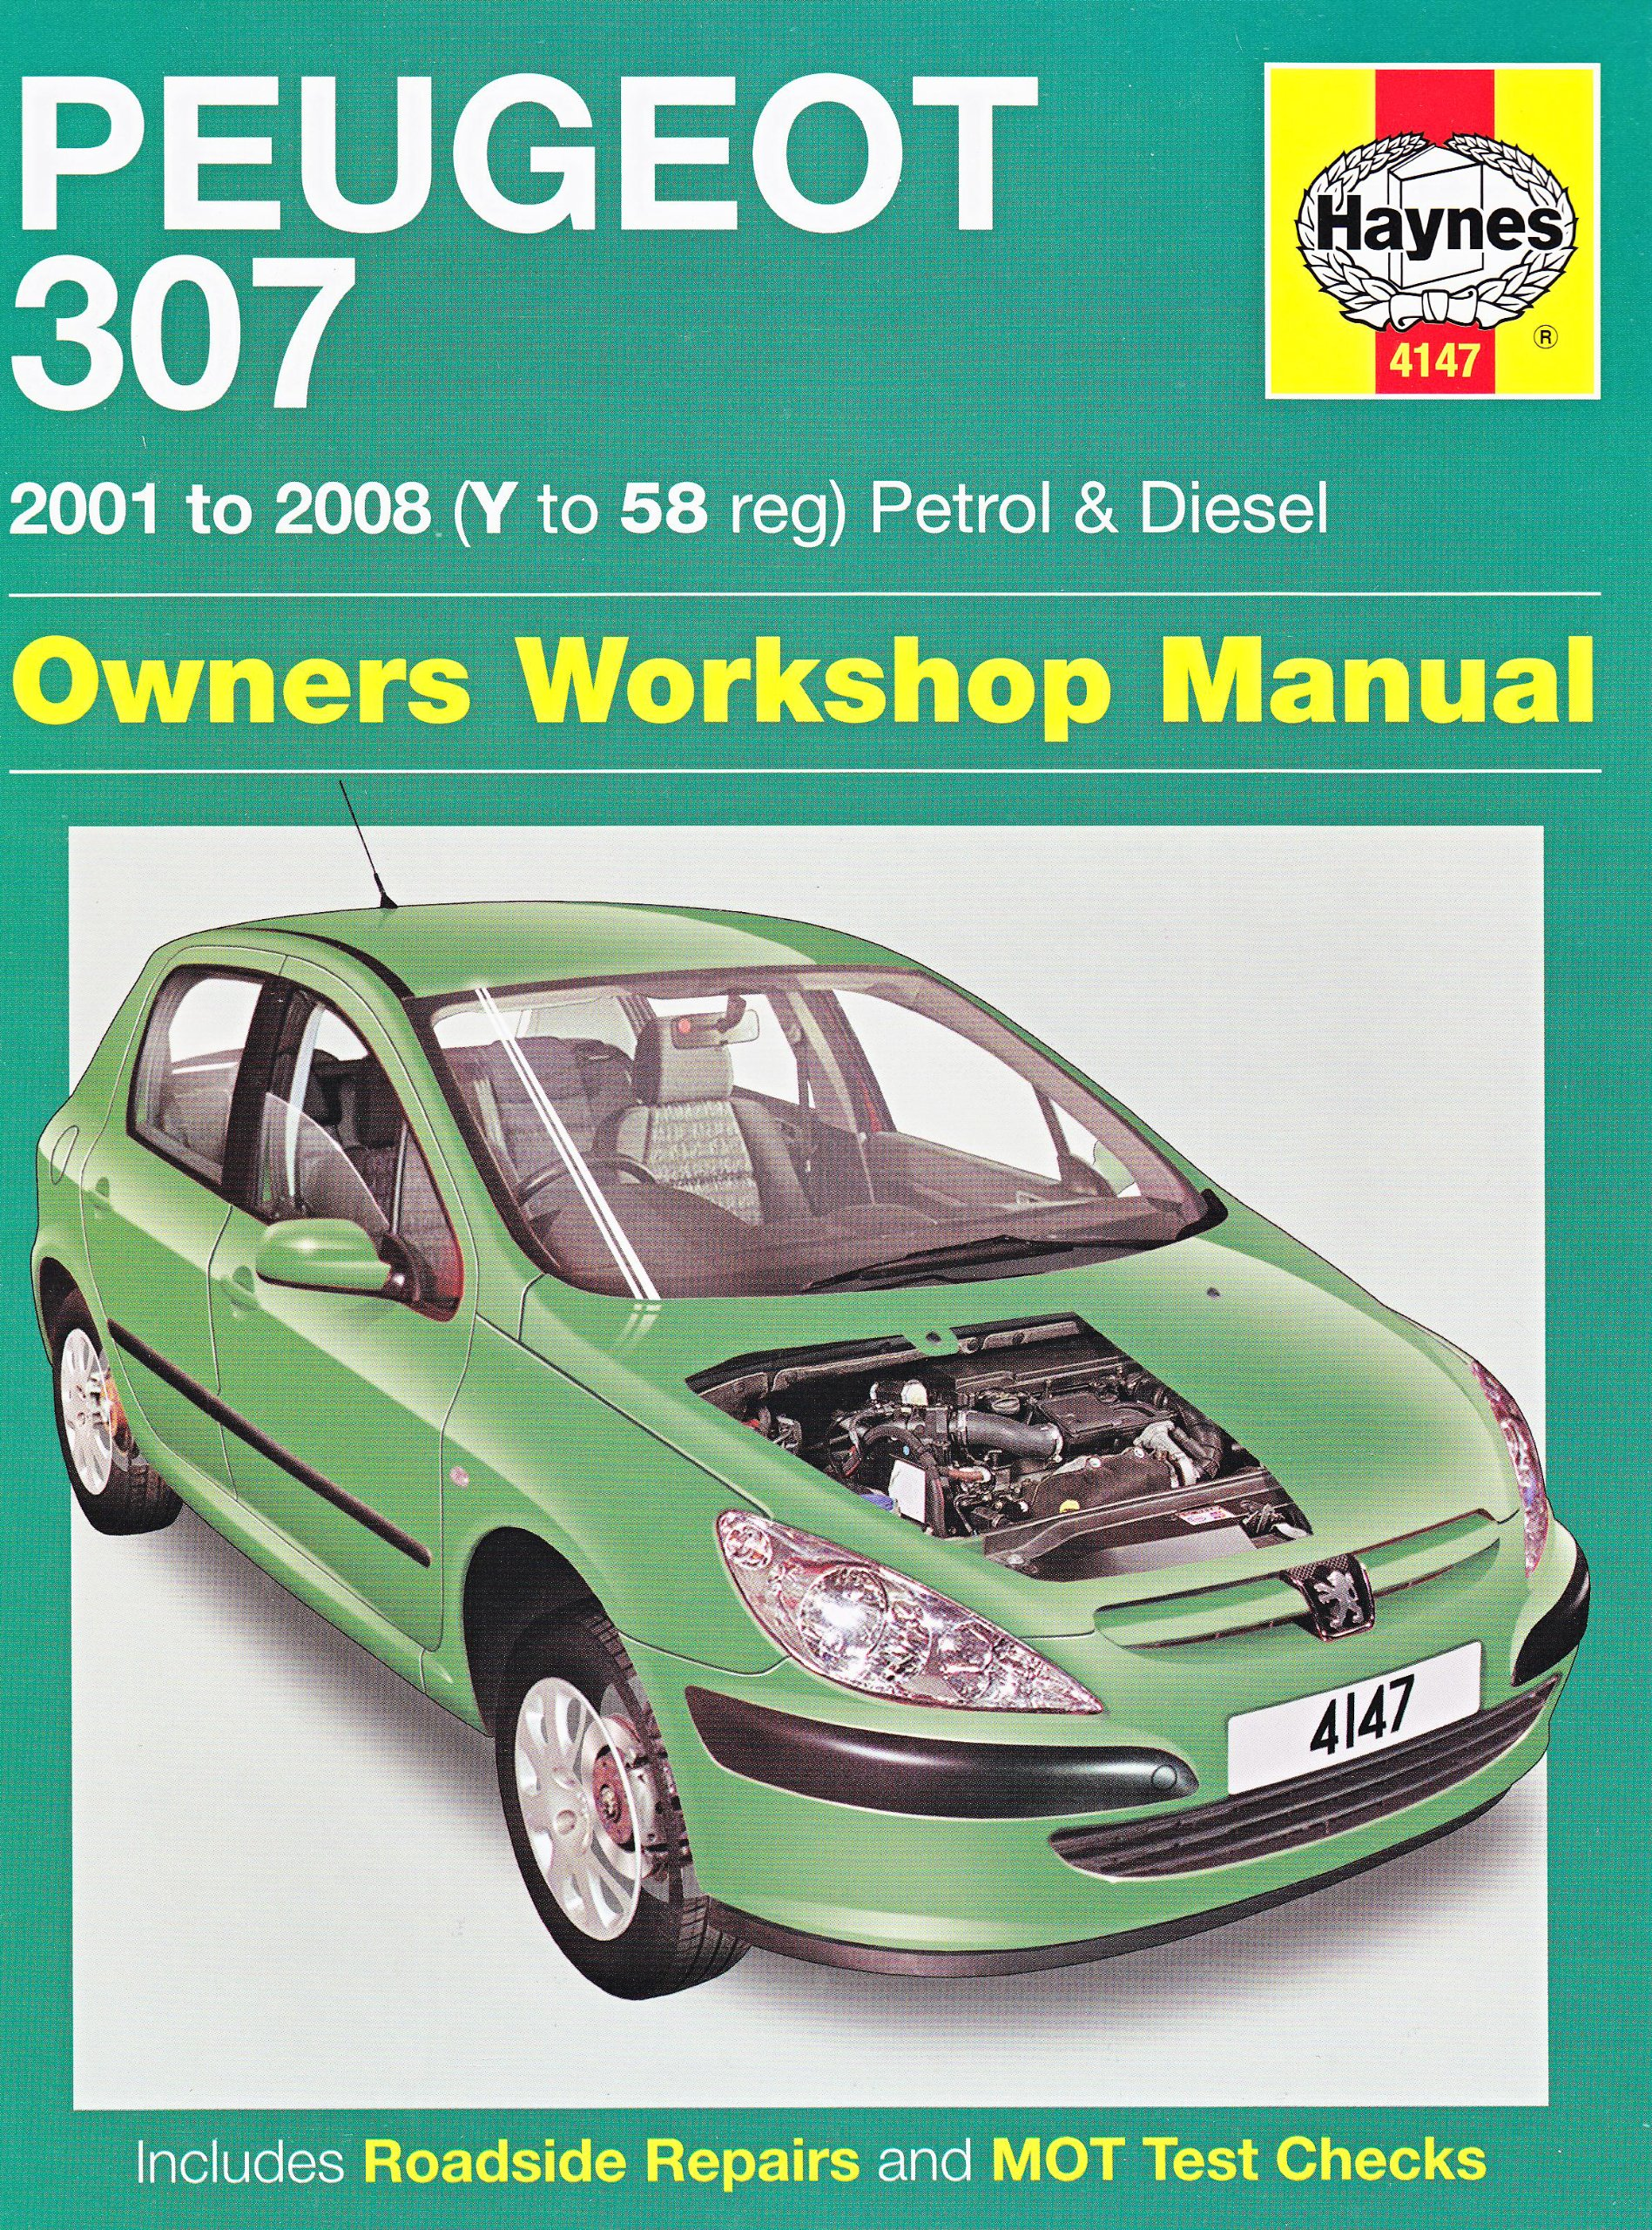 Peugeot 307 Petrol and Diesel Owners Workshop Manual: 2001 to 2008 (Haynes  Service and Repair Manuals): Amazon.co.uk: Martynn Randall: 9781844258000:  Books